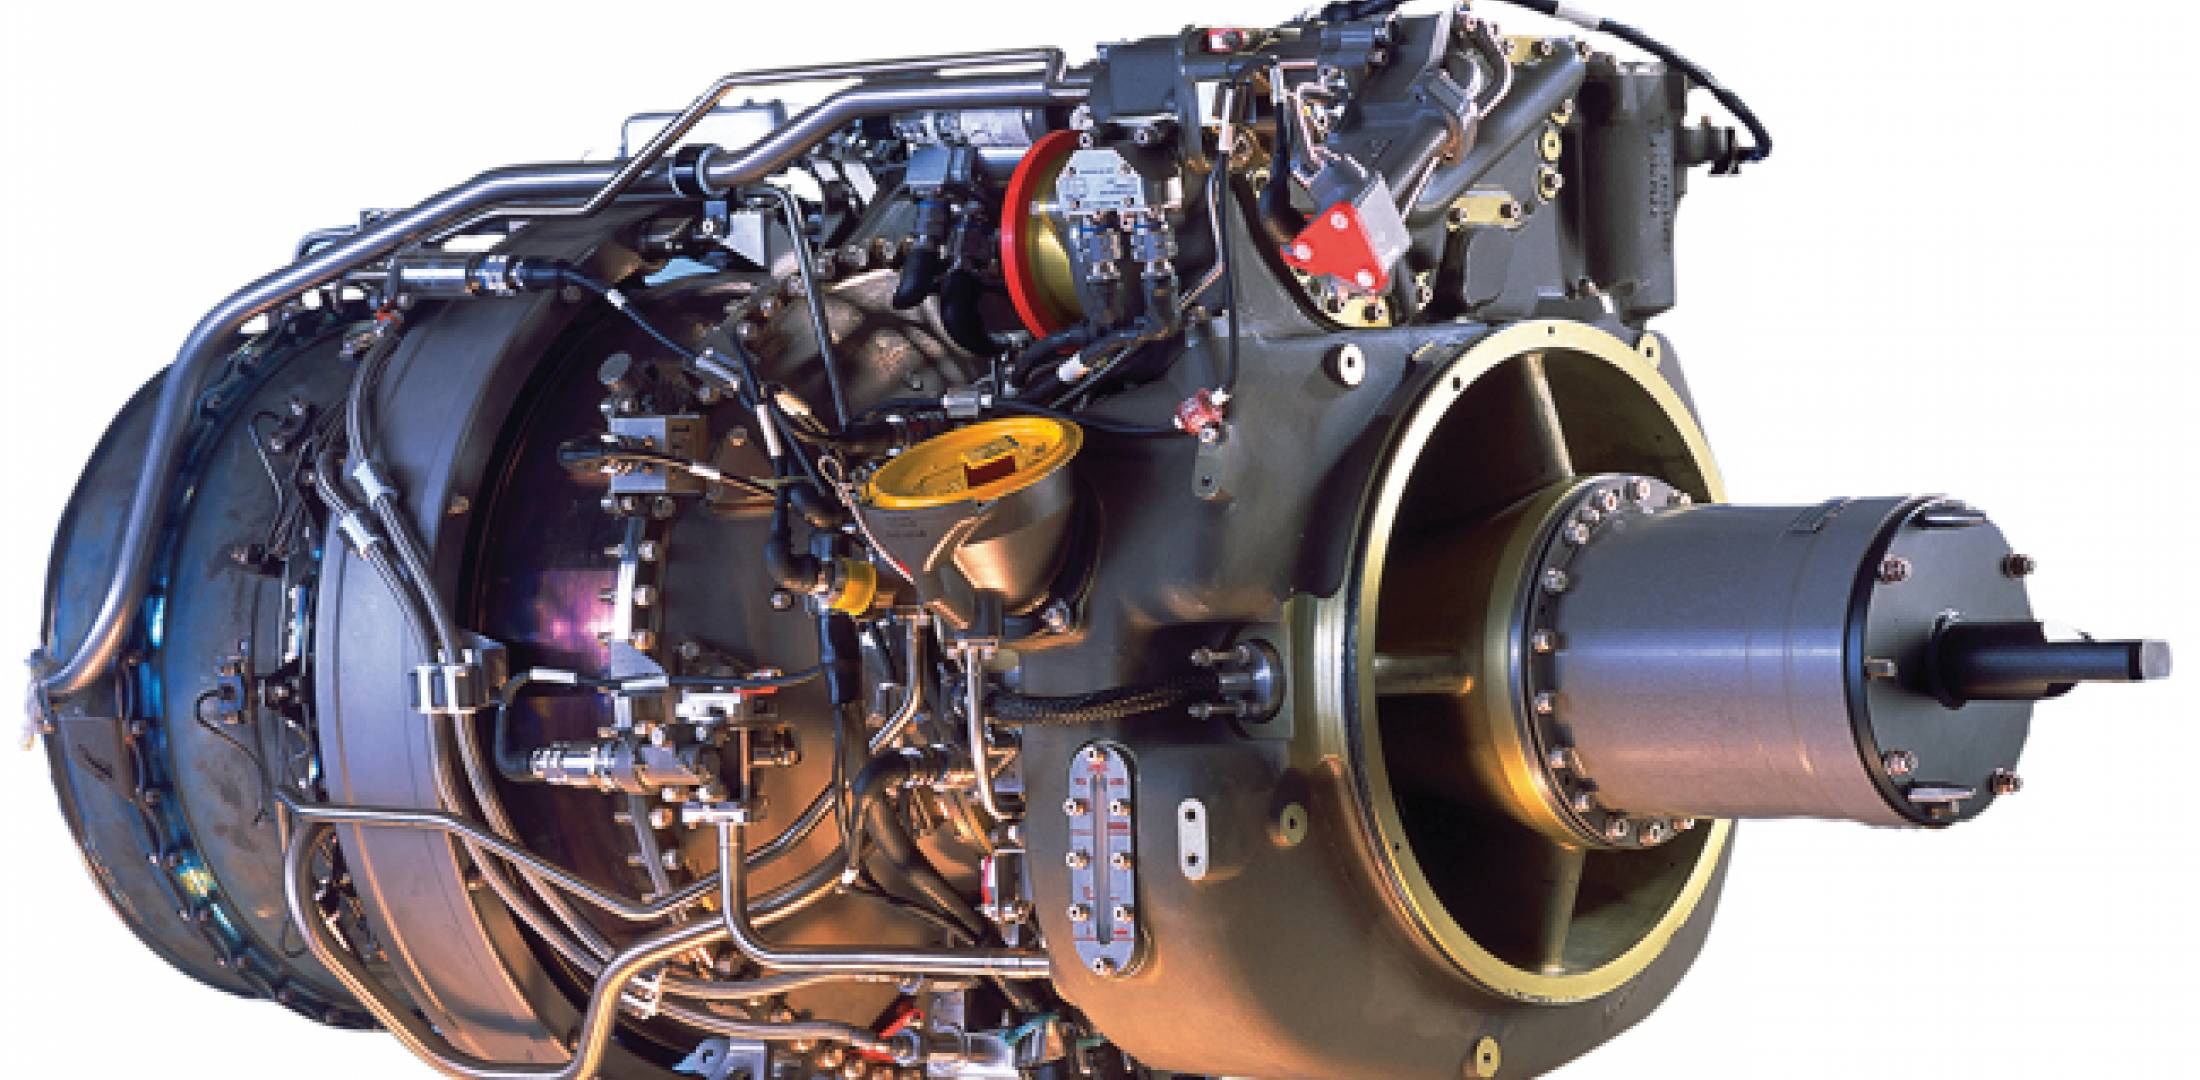 Turbomeca has recently taken over Rolls-Royce's shares in the RTM322 program and the  accompanying know-how in hot sections for  2,000- to 3,000-shp engines.